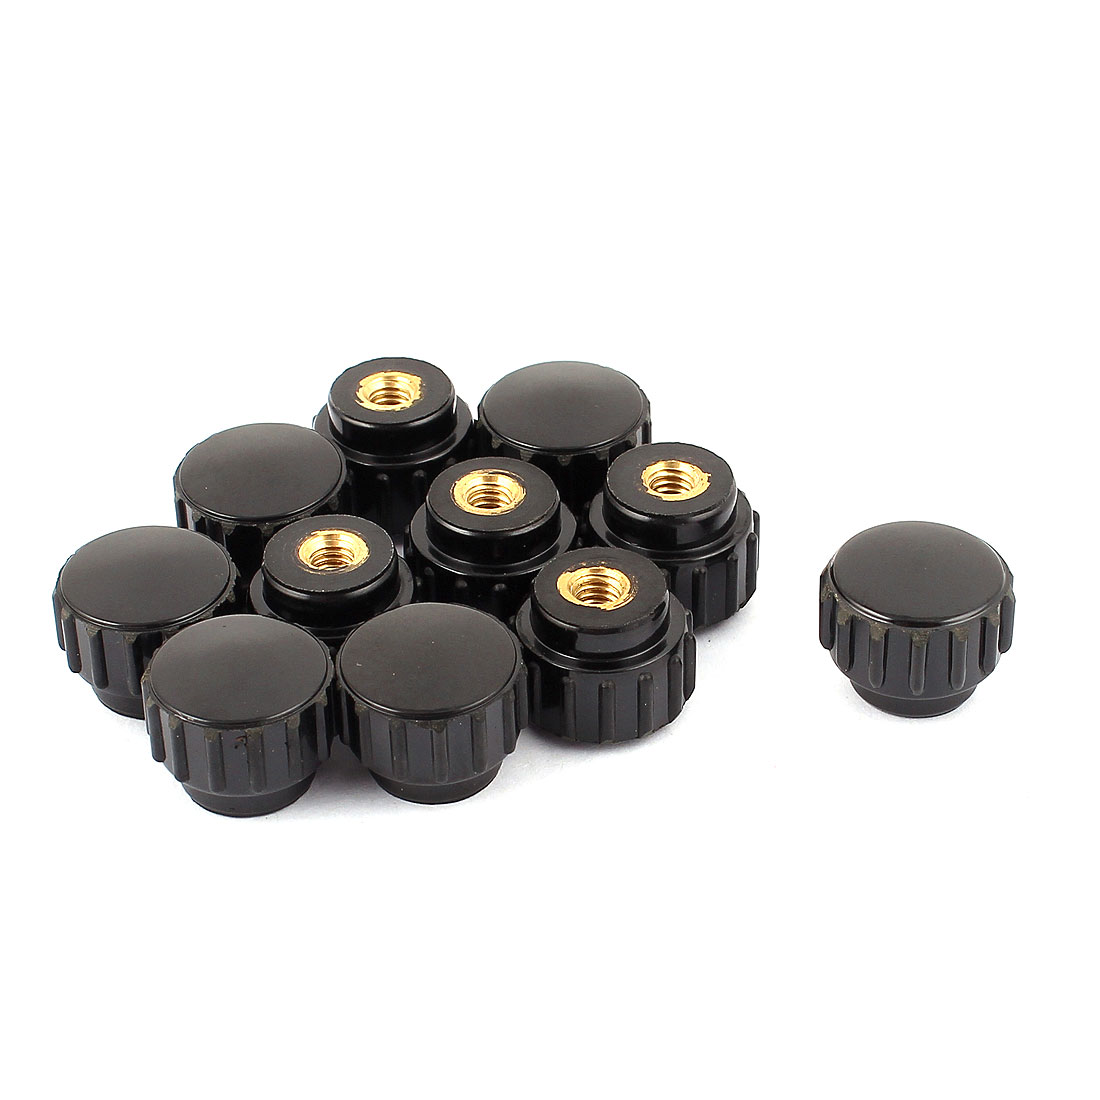 New Replacement 4mm Dia Female Thread Plastic Grip Nuts Head Knurled Knobs